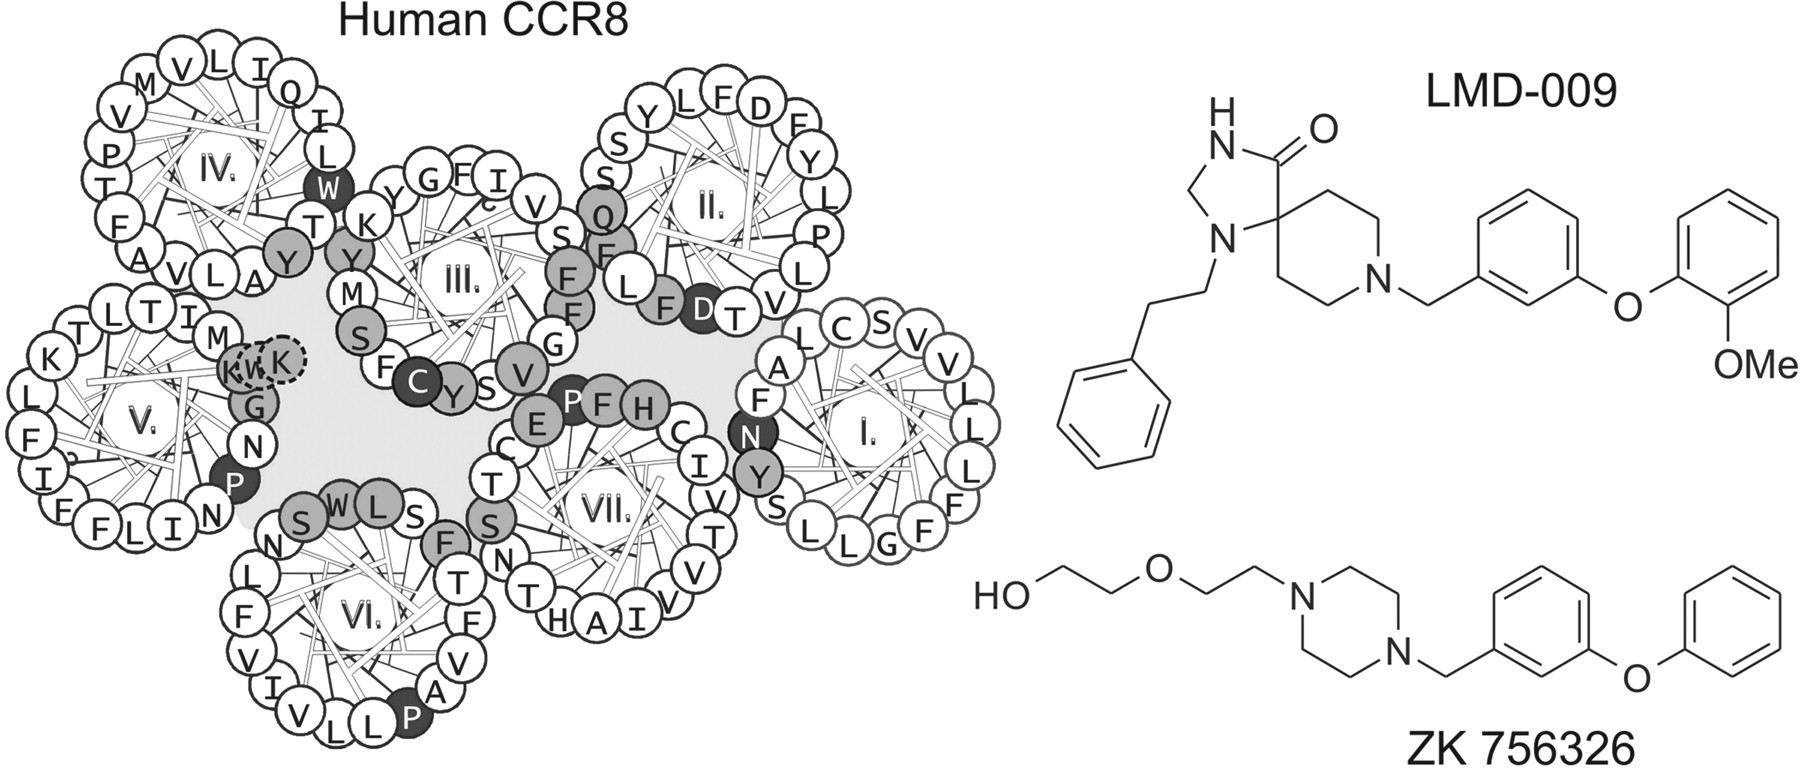 molecular interaction of a potent nonpeptide agonist with